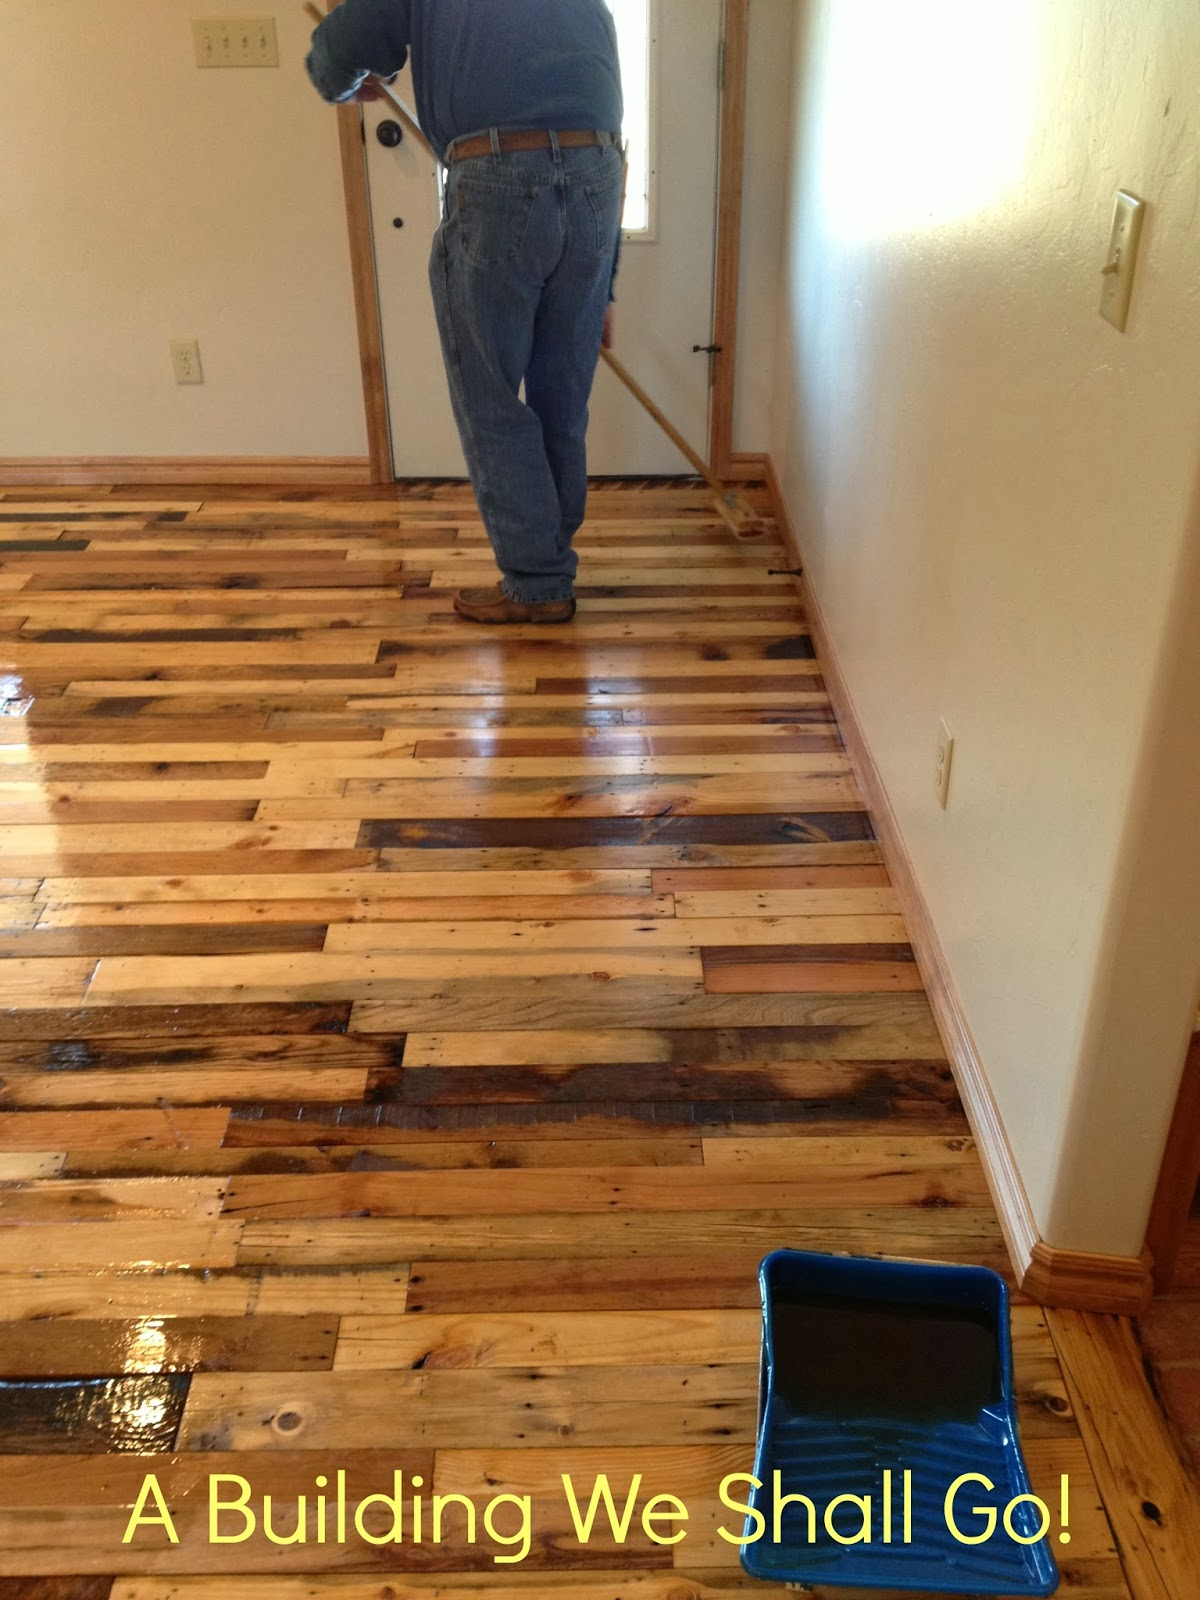 Made With Hardwood Solids With Cherry Veneers And Walnut: A Building We Shall Go!: The Art Of Pallet Wood Flooring